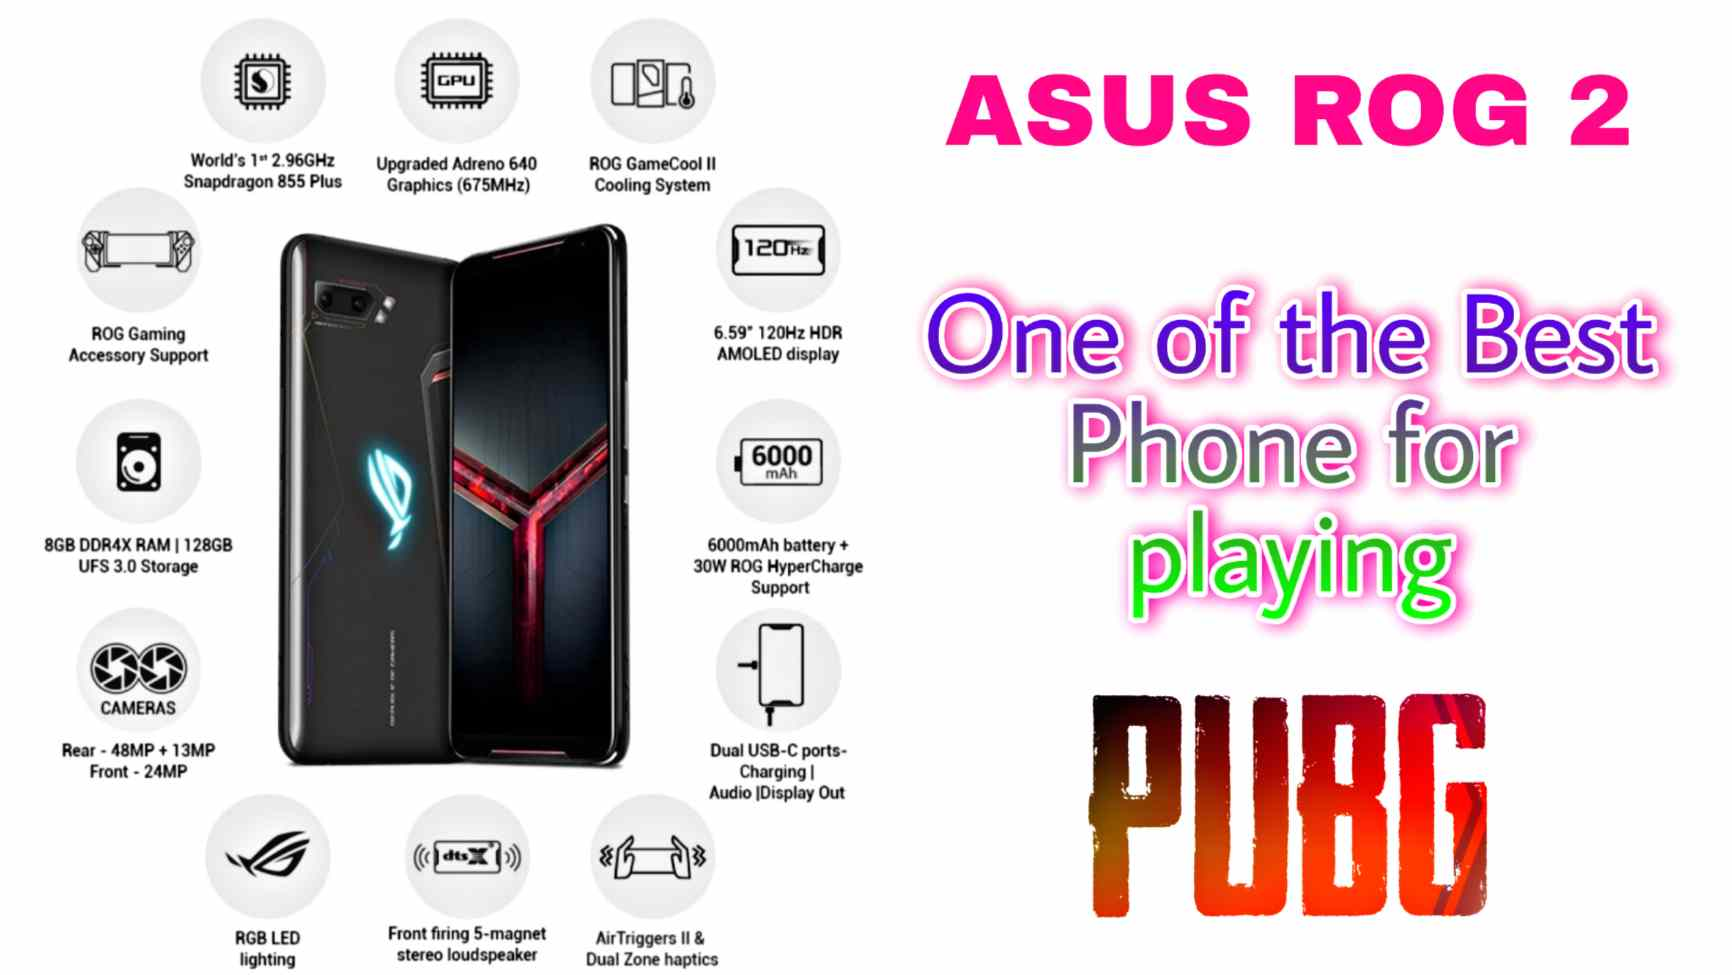 Asus RoG 2 picture